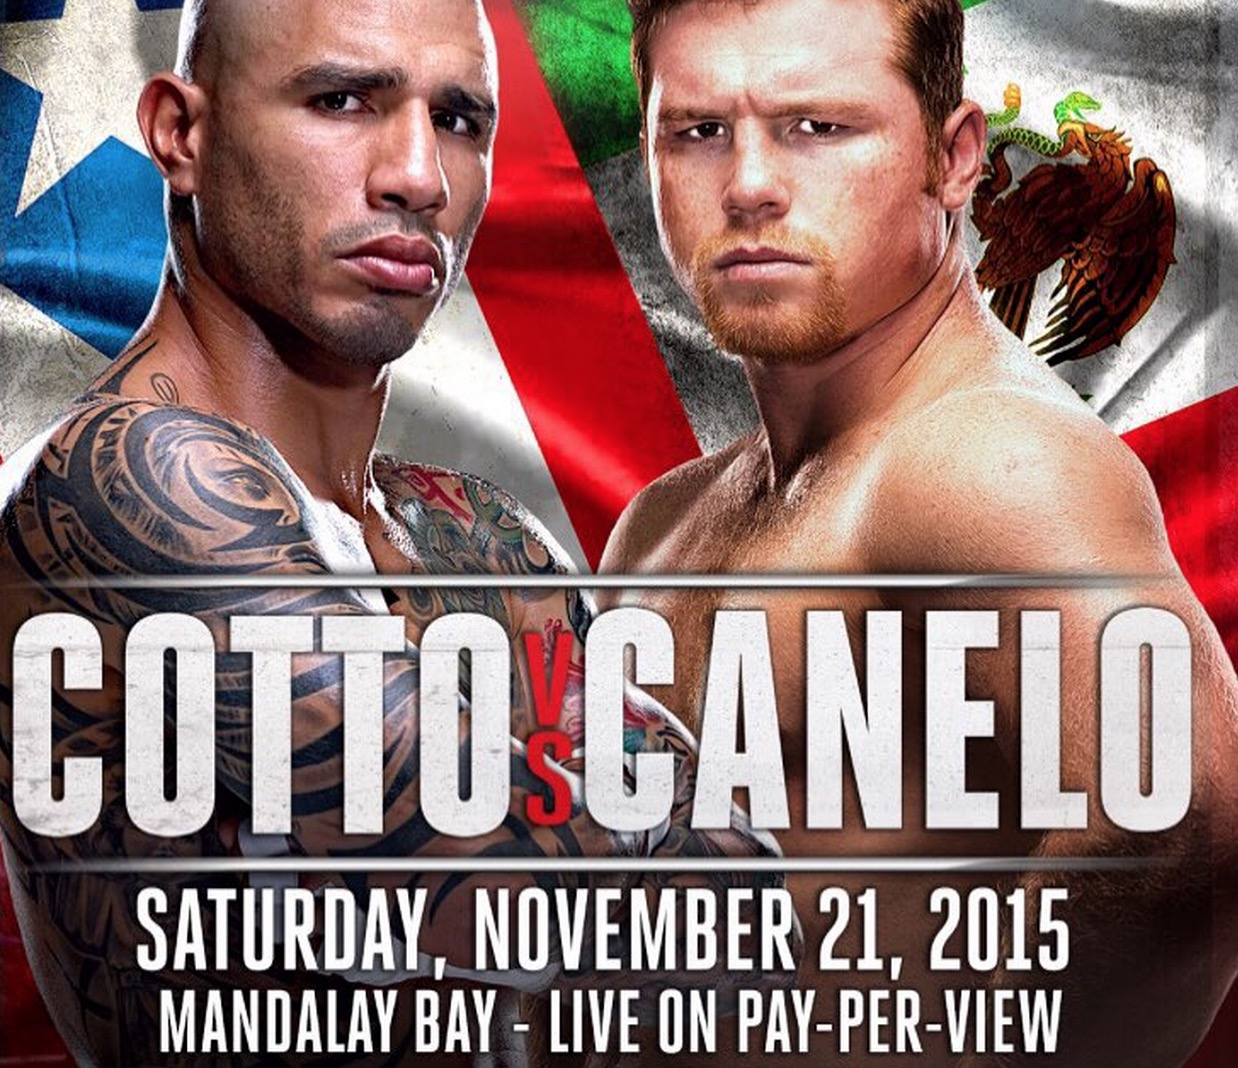 Against all odds: Cotto vs Alvarez, Abraham vs Murray and more